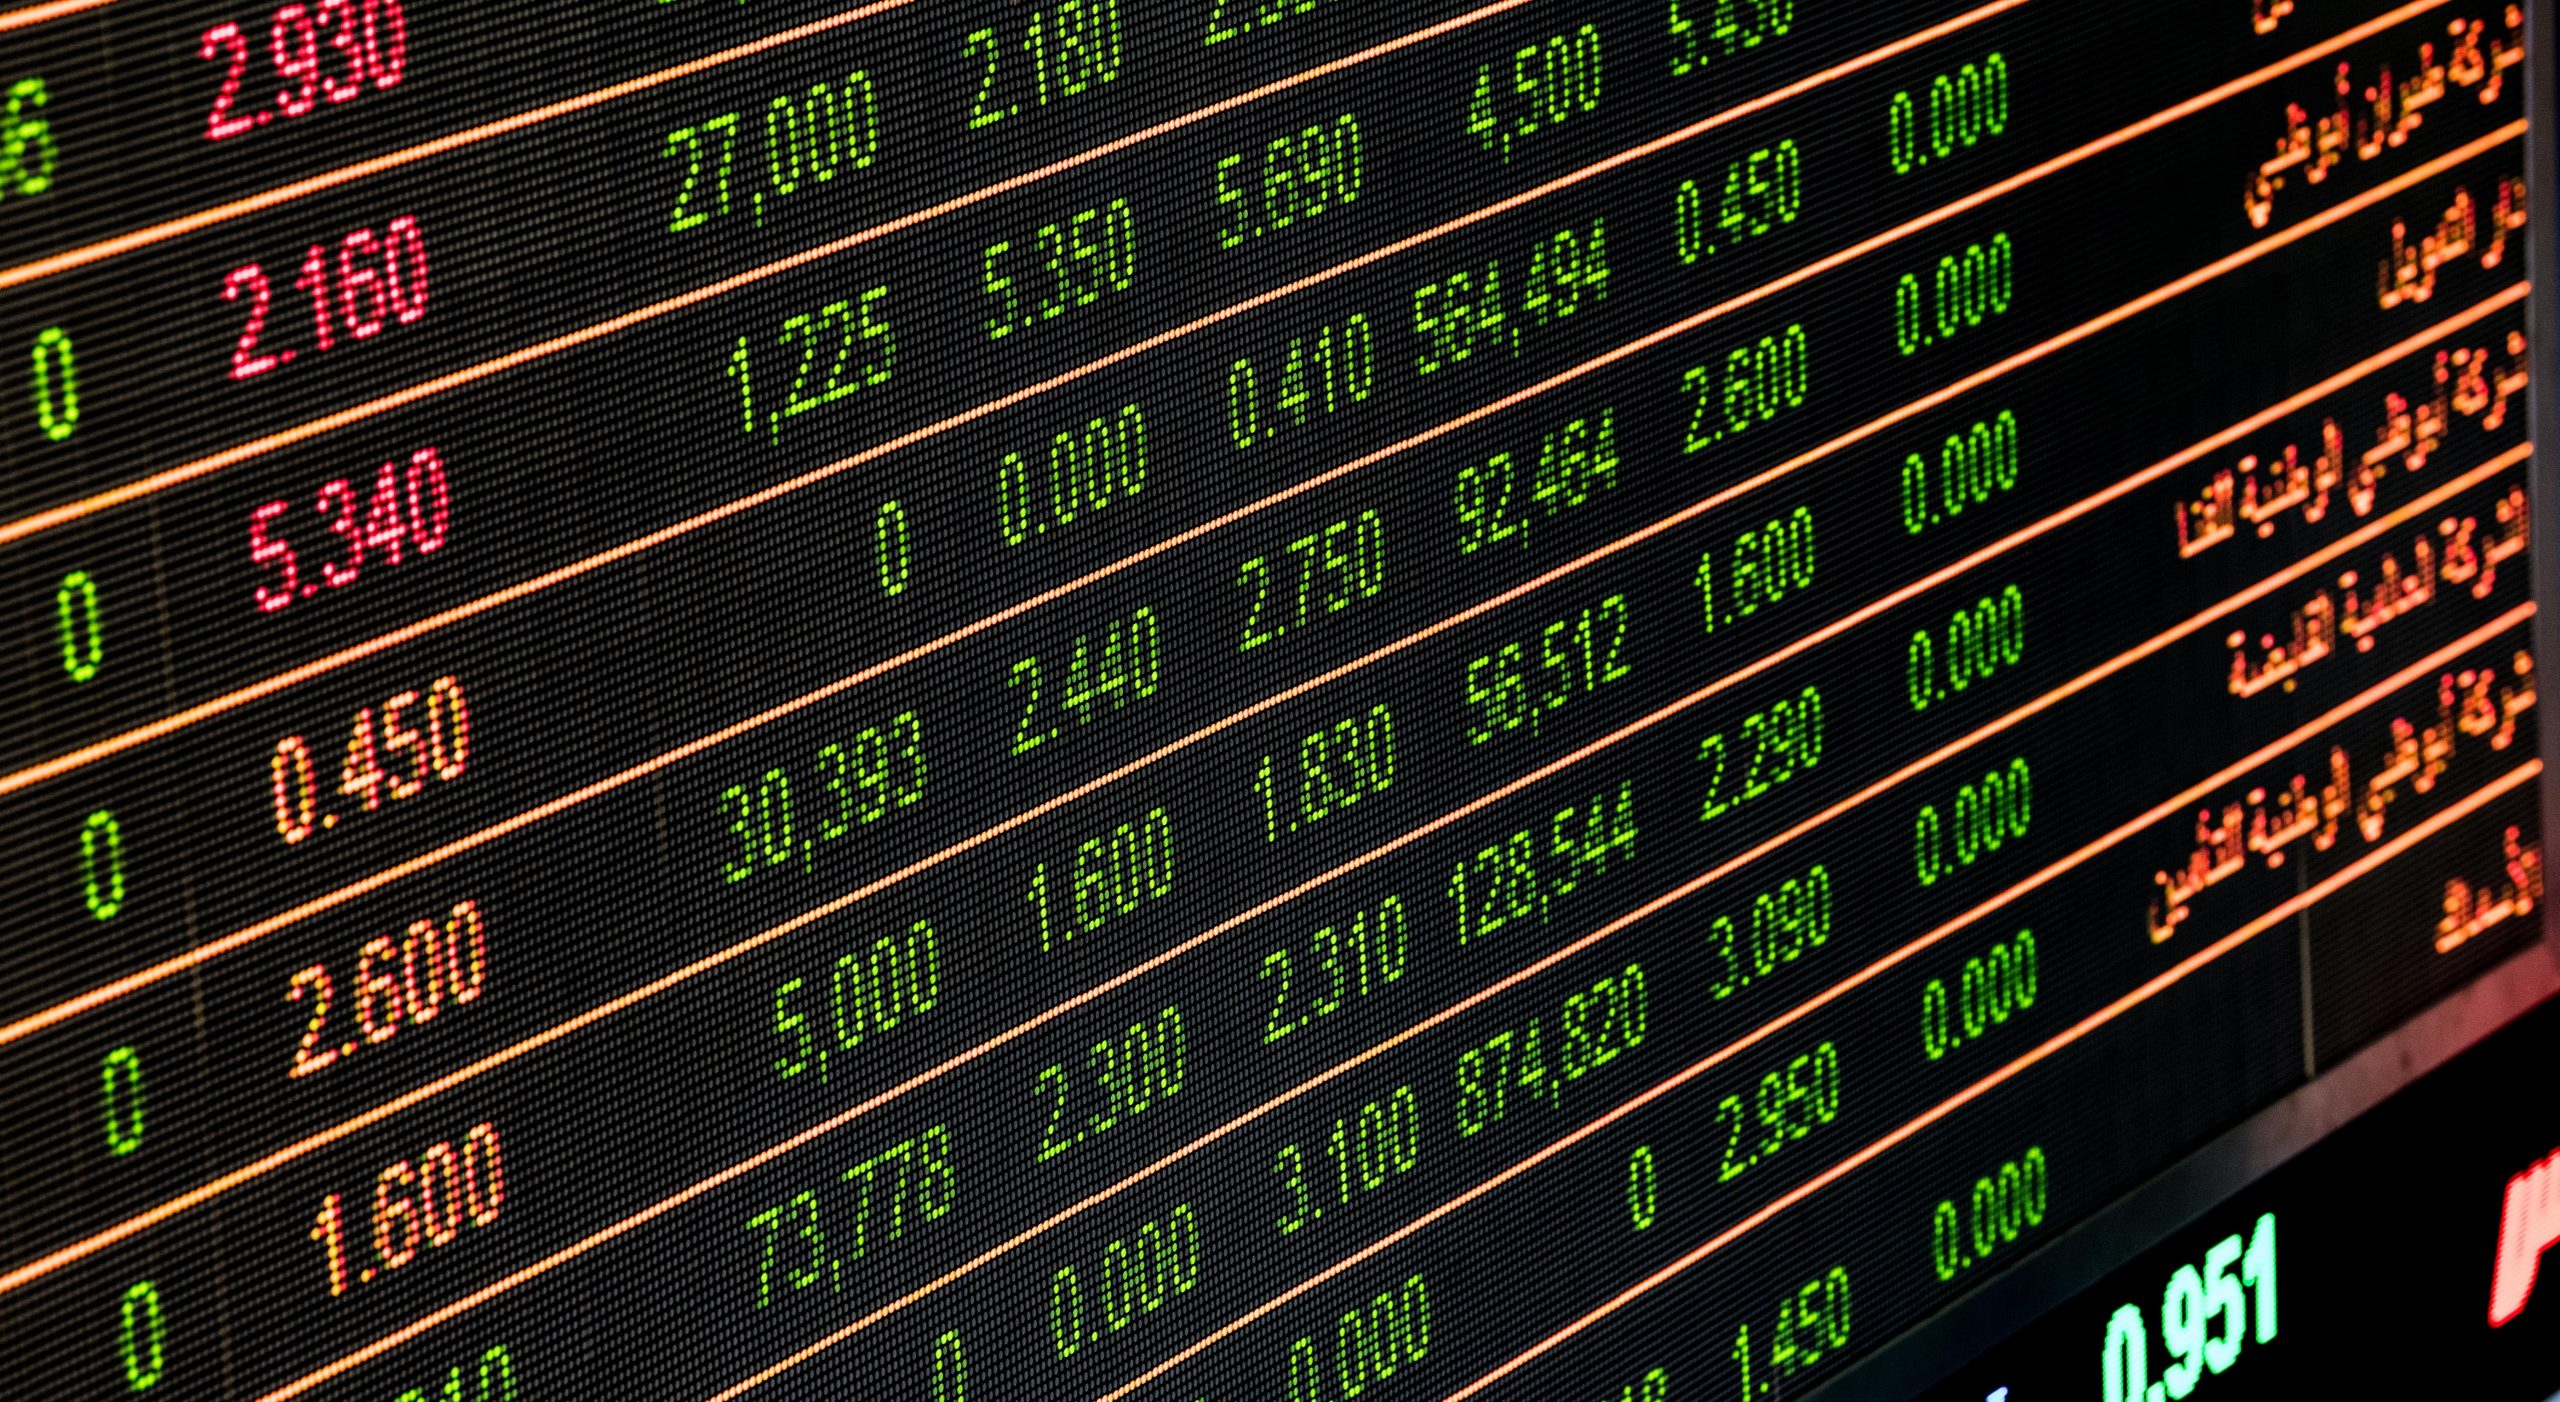 Record interest in investing and personal finance in Europe